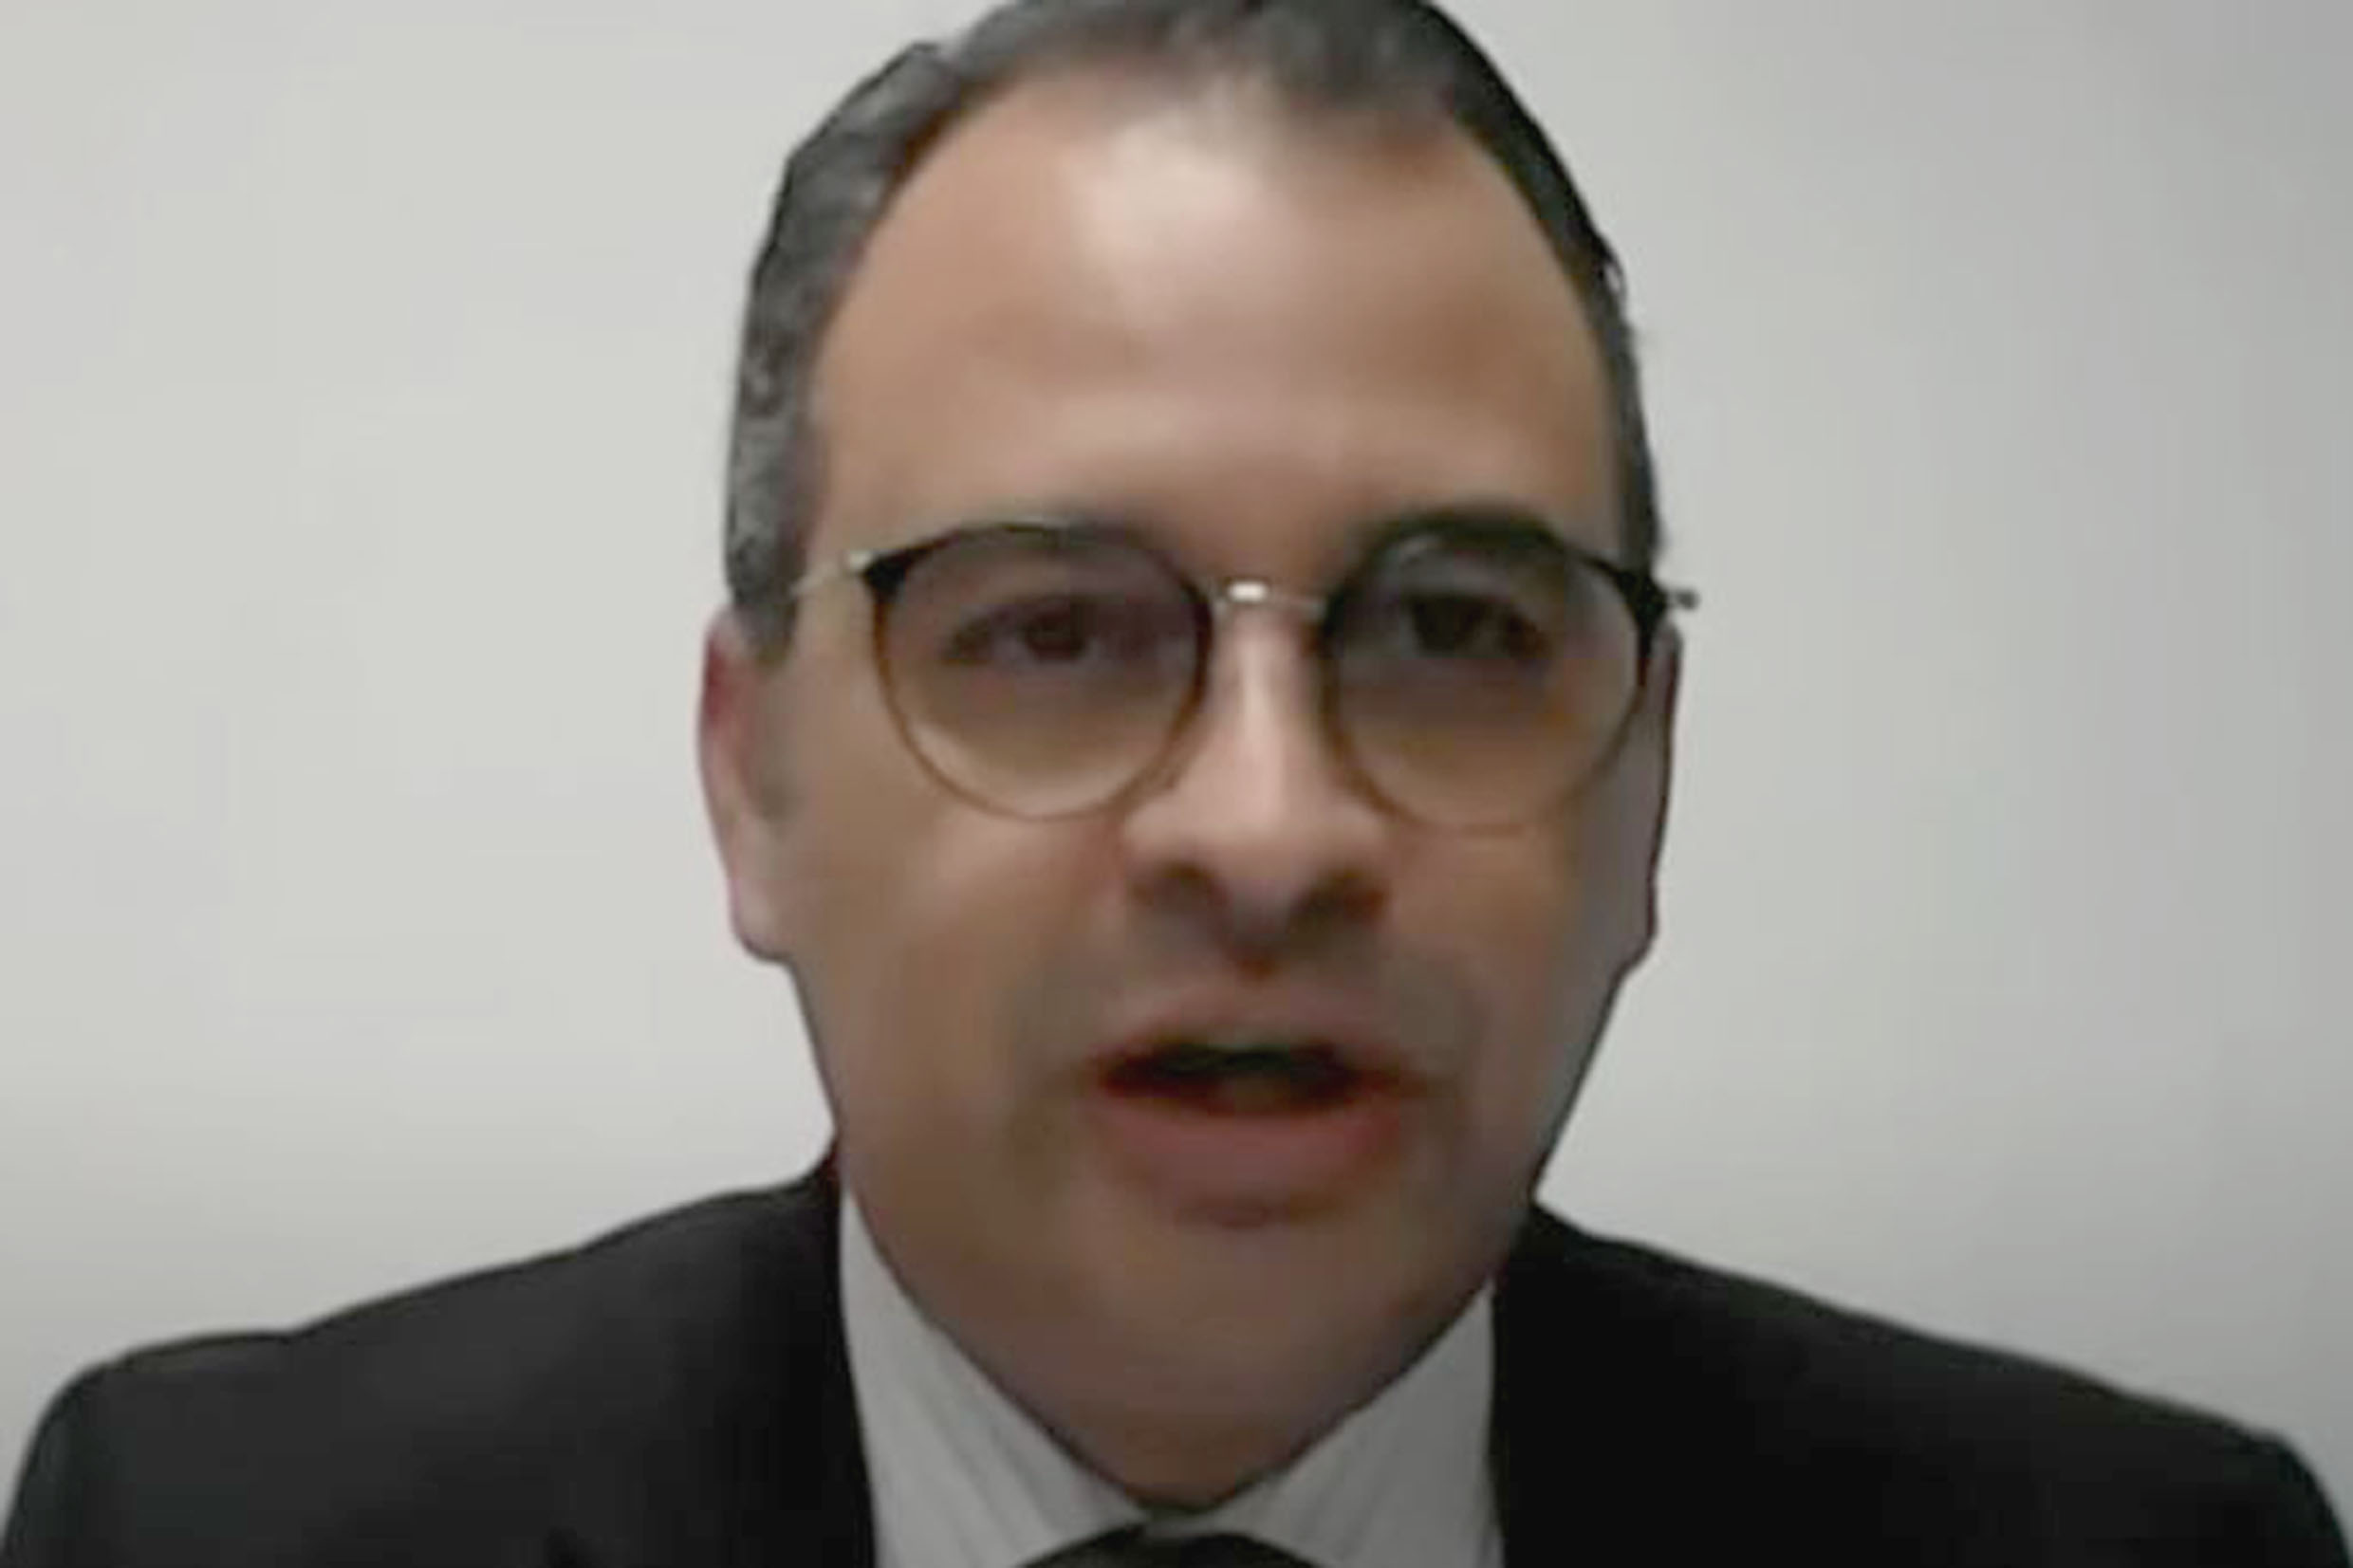 Dr. Marcos Henrique<a style='float:right' href='https://www3.al.sp.gov.br/repositorio/noticia/N-08-2021/fg273181.jpg' target=_blank><img src='/_img/material-file-download-white.png' width='14px' alt='Clique para baixar a imagem'></a>